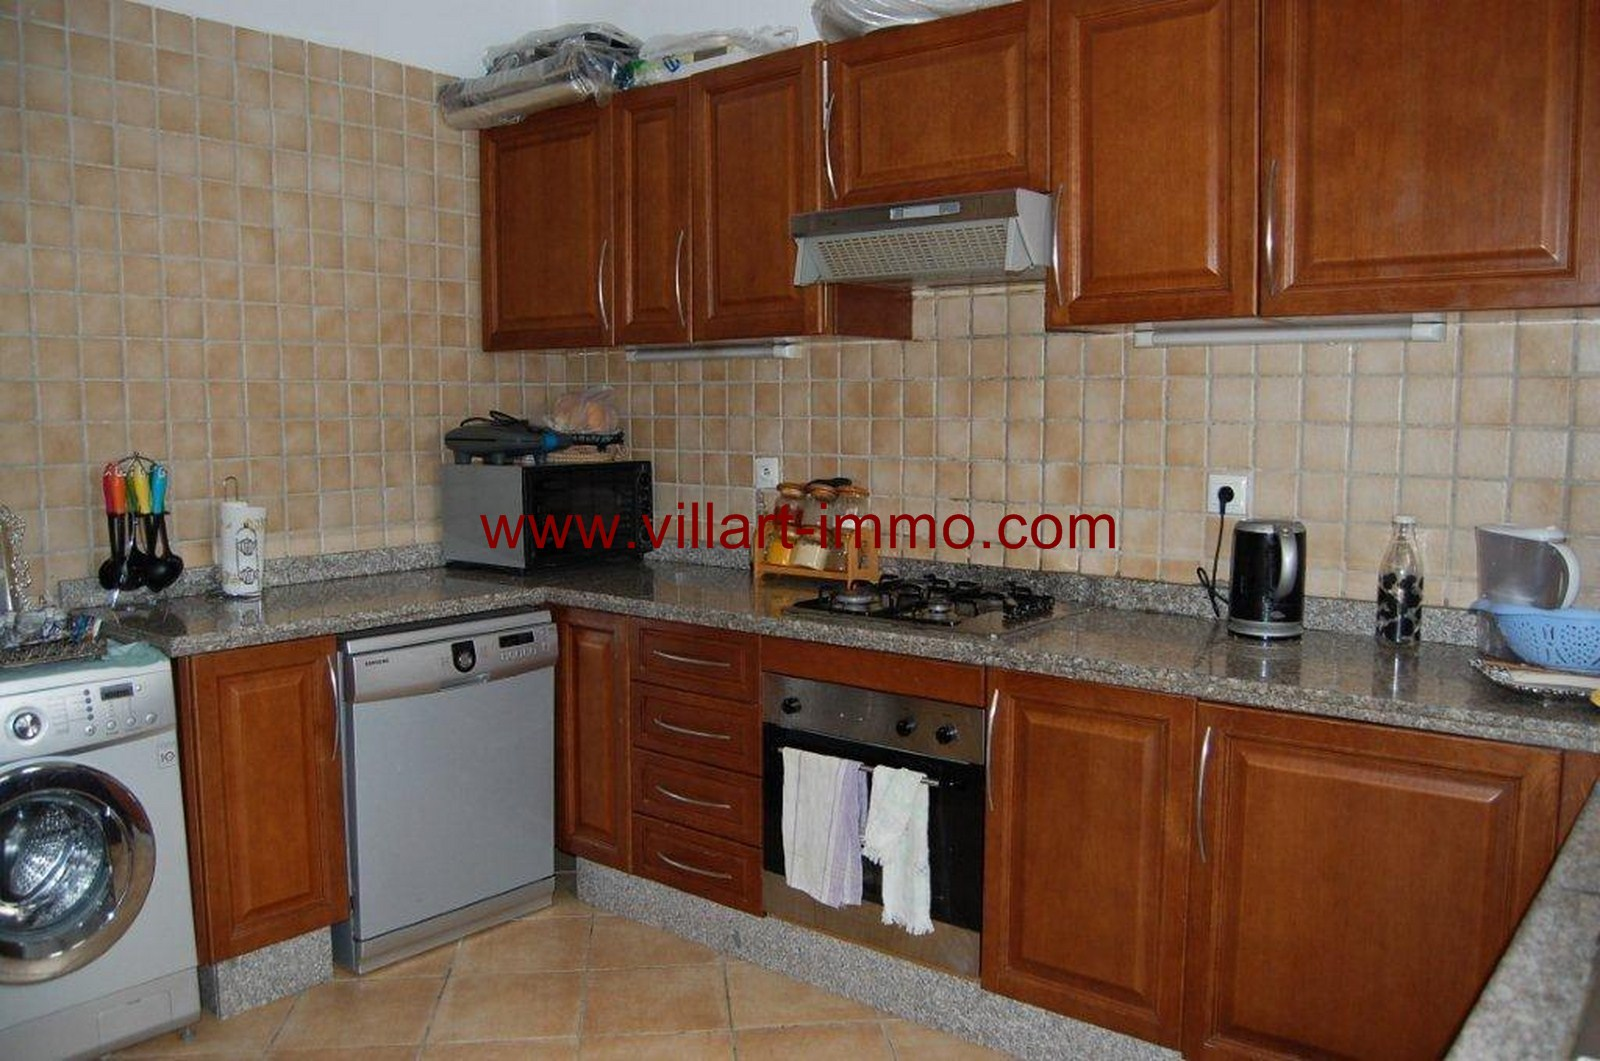 7-For-Sale-Villa-Tangier-Malabata-Kitchen-VV354-Villart Immo